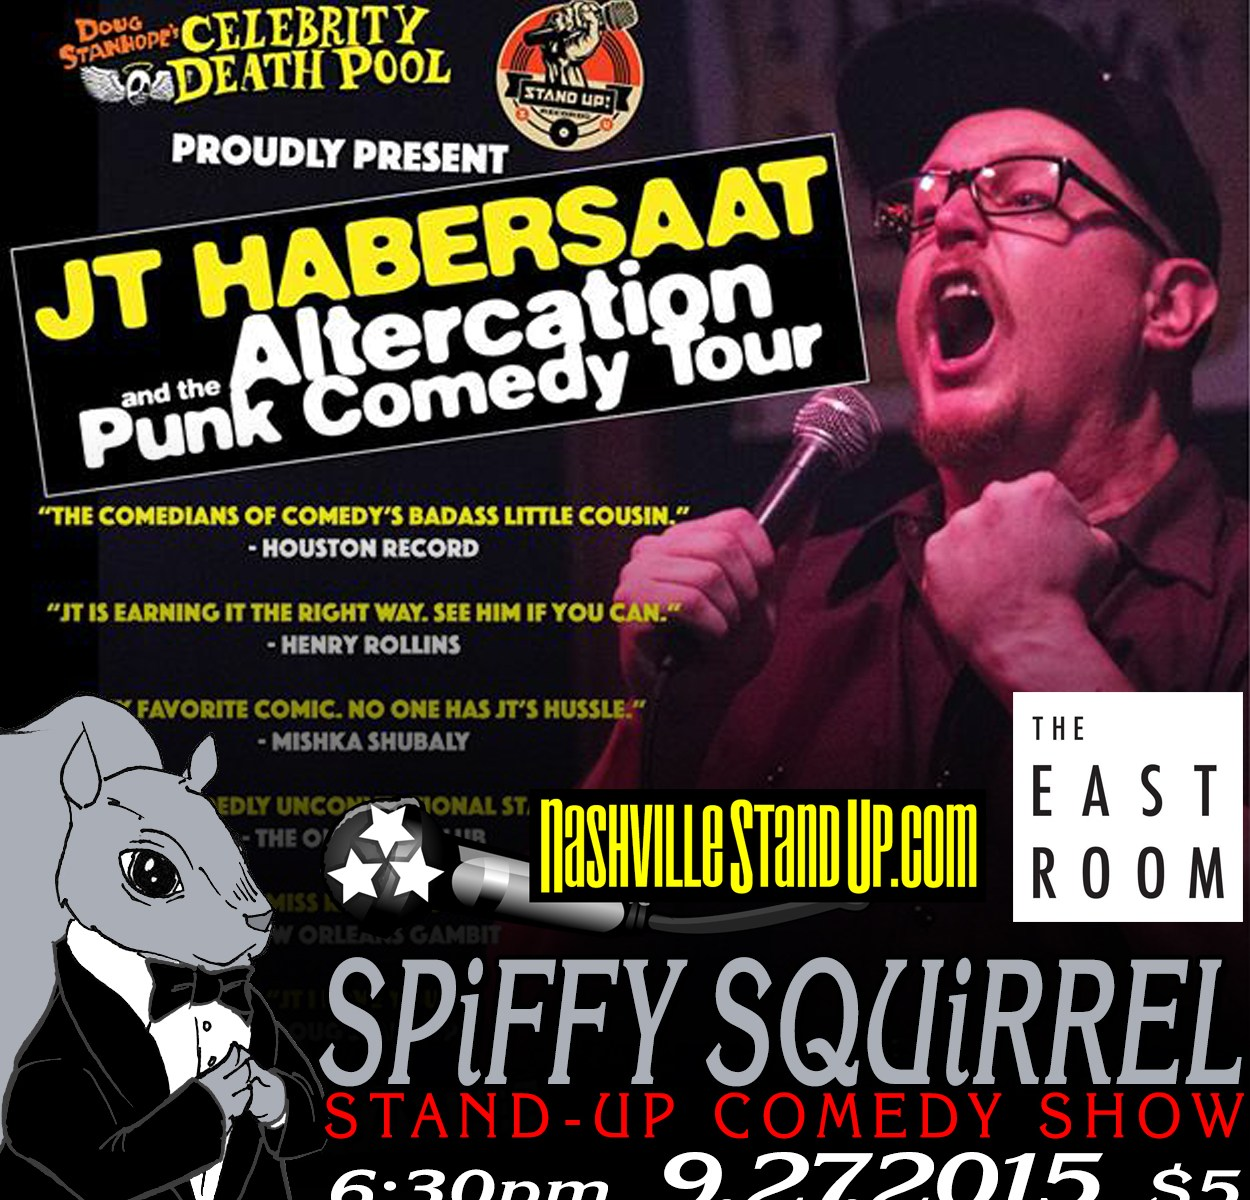 9/27/2015: JT Habersaat w/ Jay Whitecotton & Brian Zeolla at Spiffy Squirrel stand-up comedy show at The East Room.